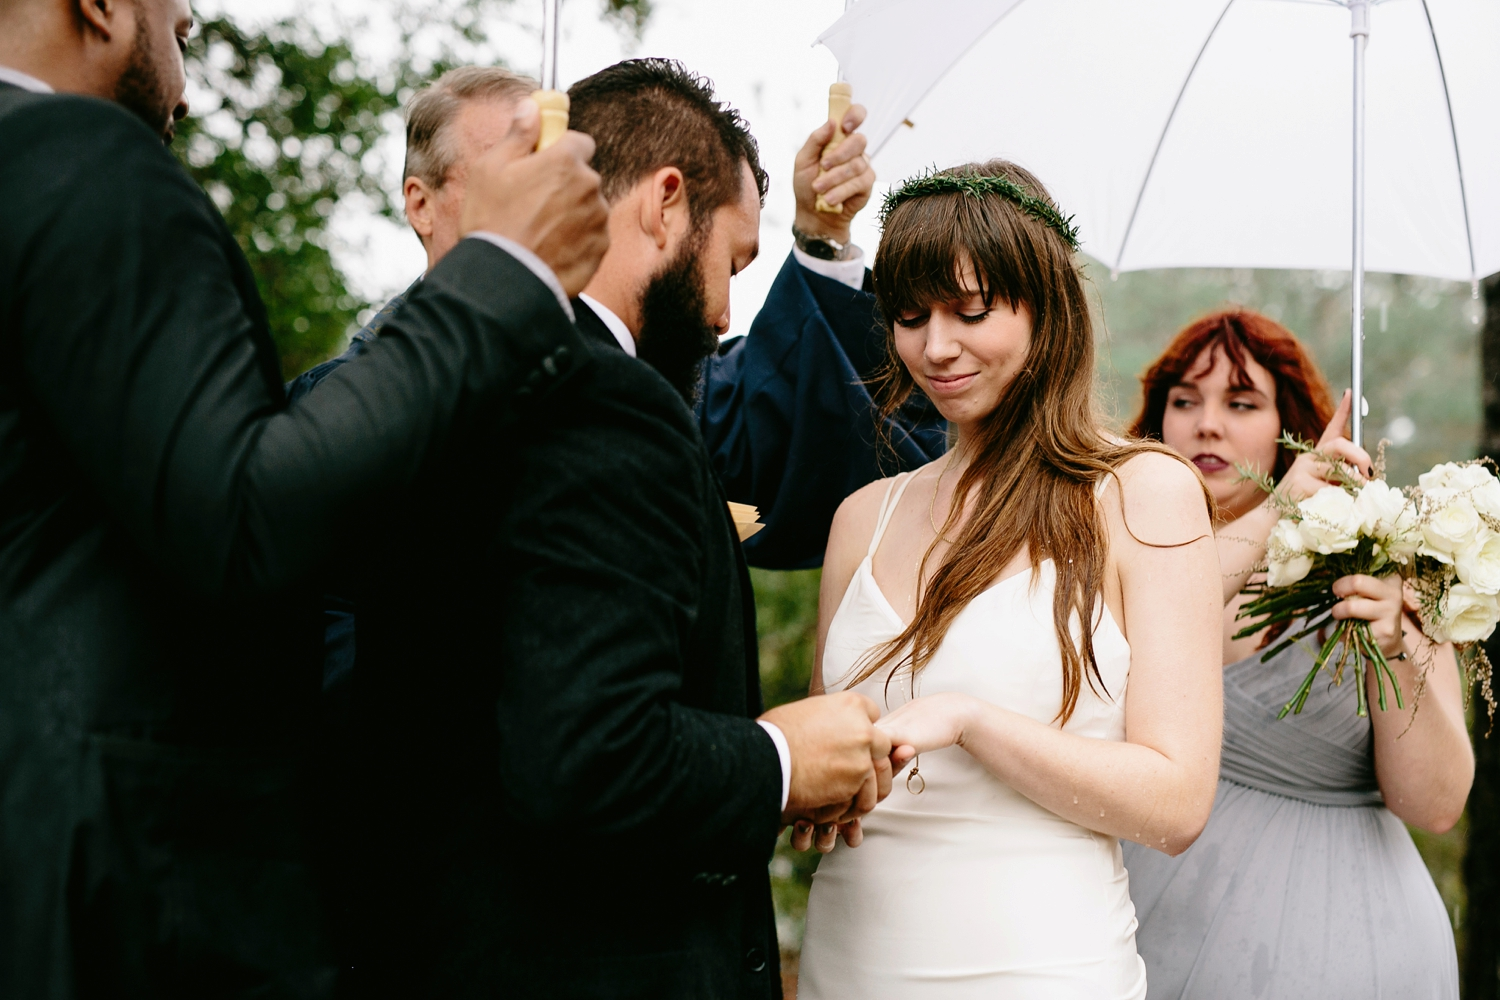 rainy-wedding-pictures-078